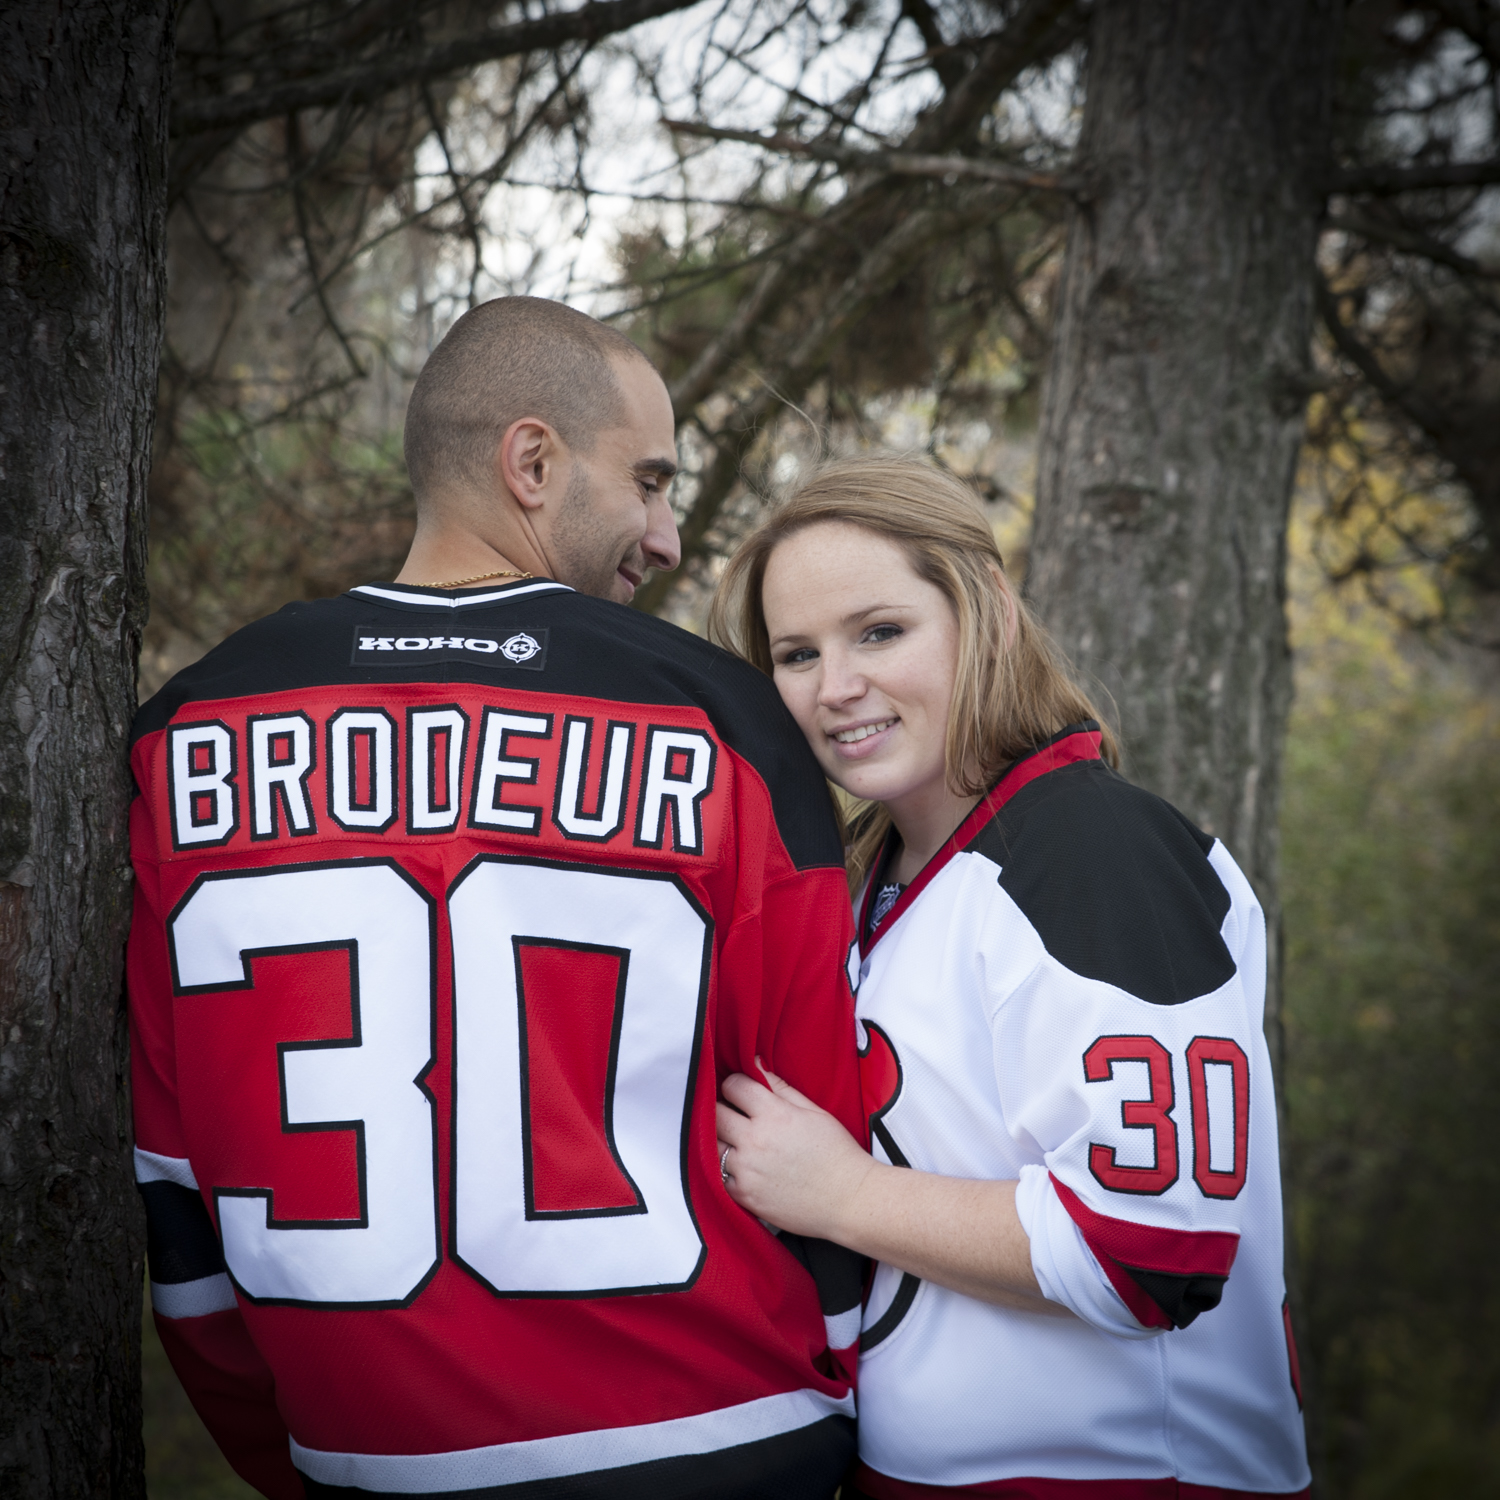 Engagement photo with Hockey Jerseys